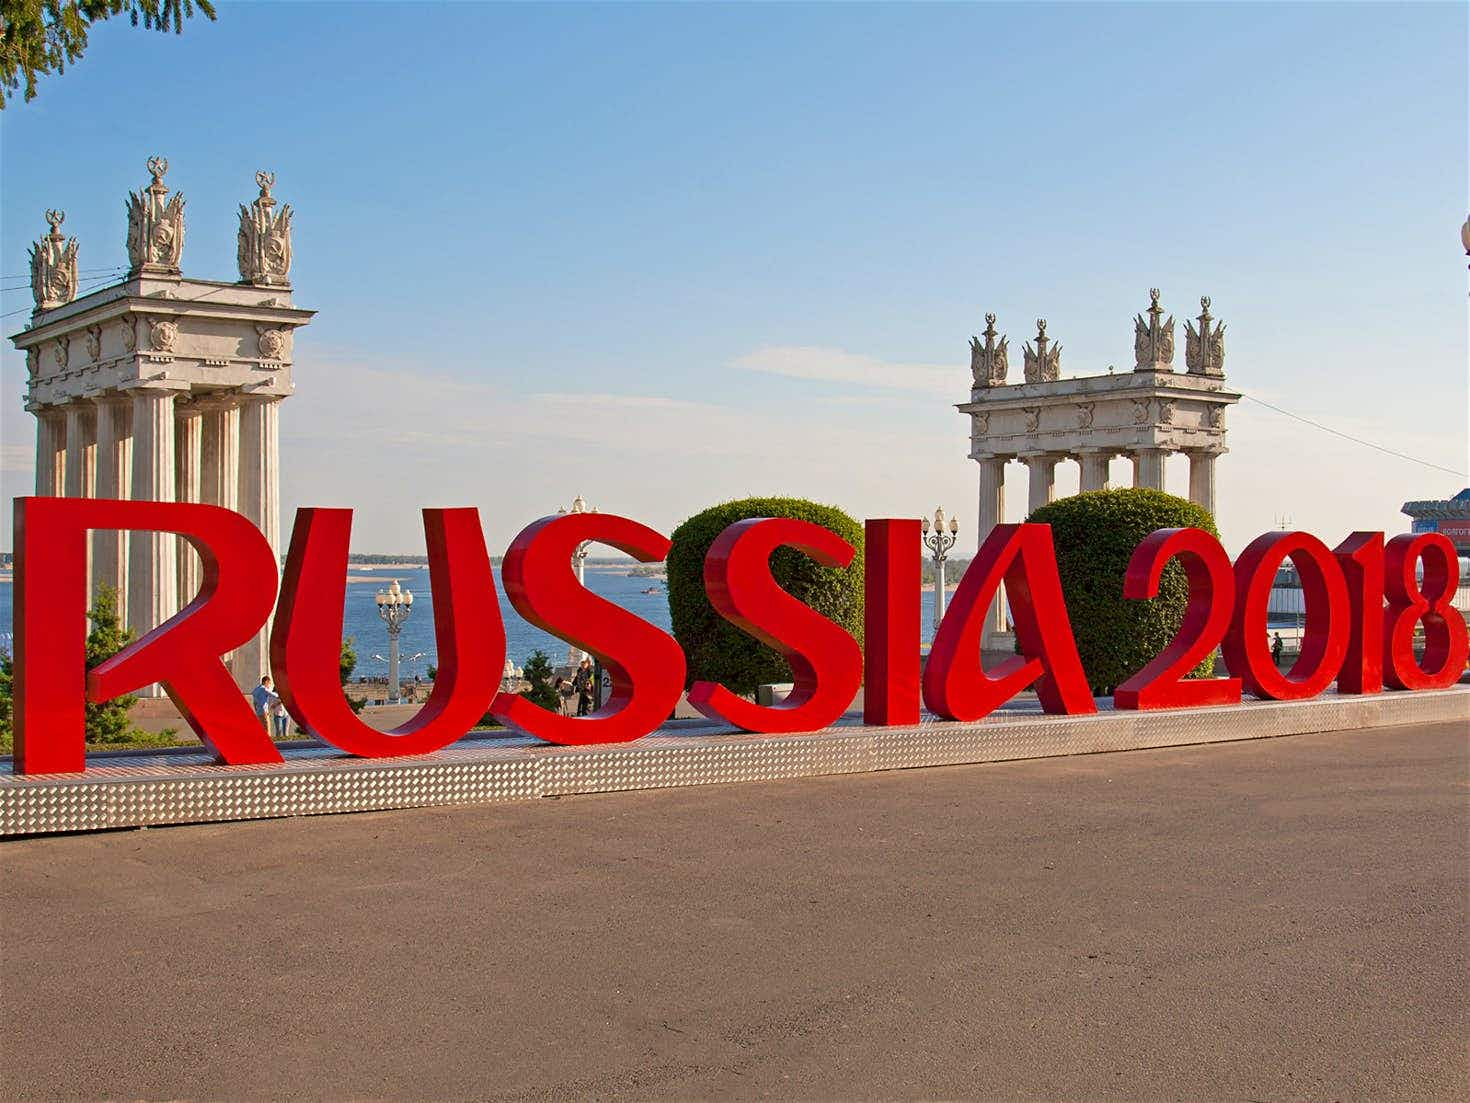 Russia's World Cup 2018 - a quick traveller's guide to host cities